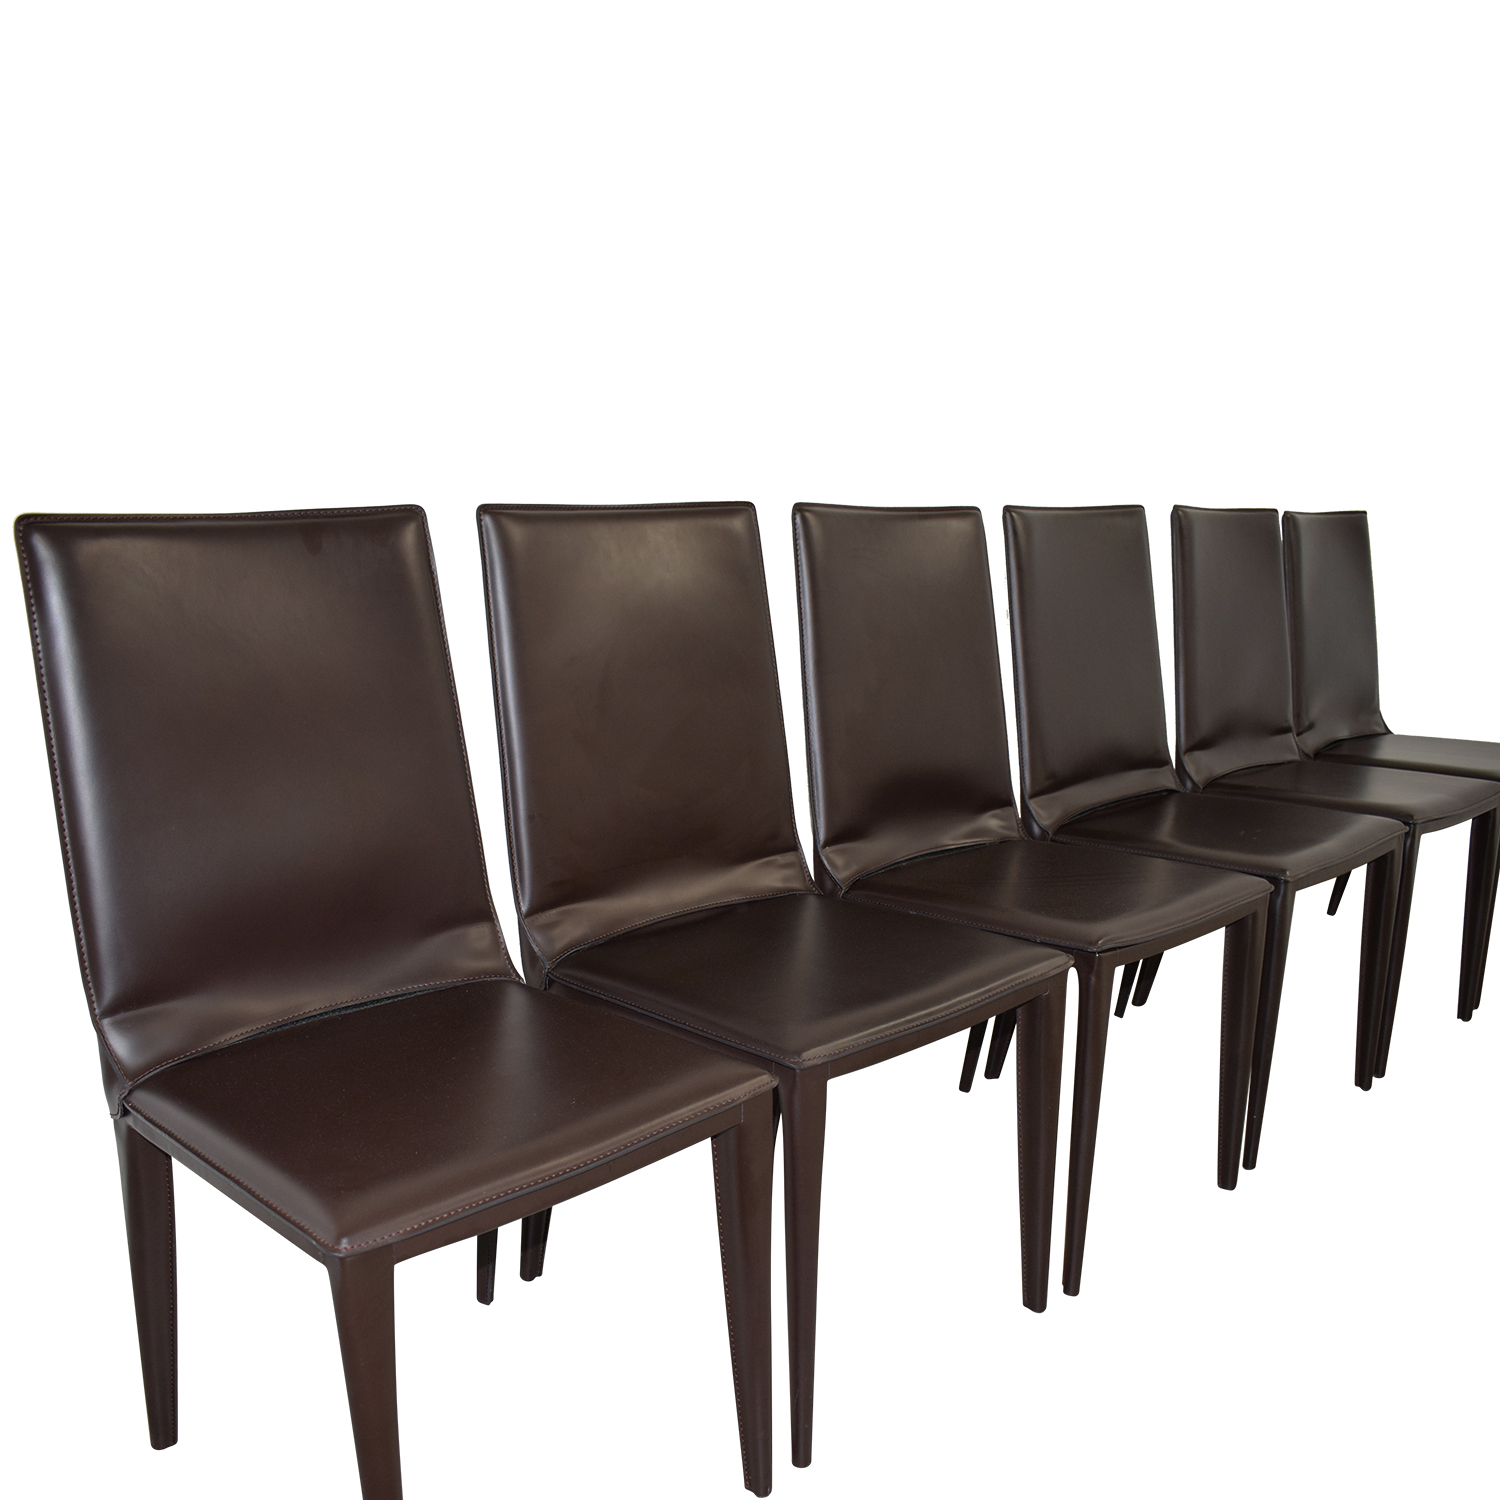 buy Frag Brown Leather Dining Room Chairs Frag